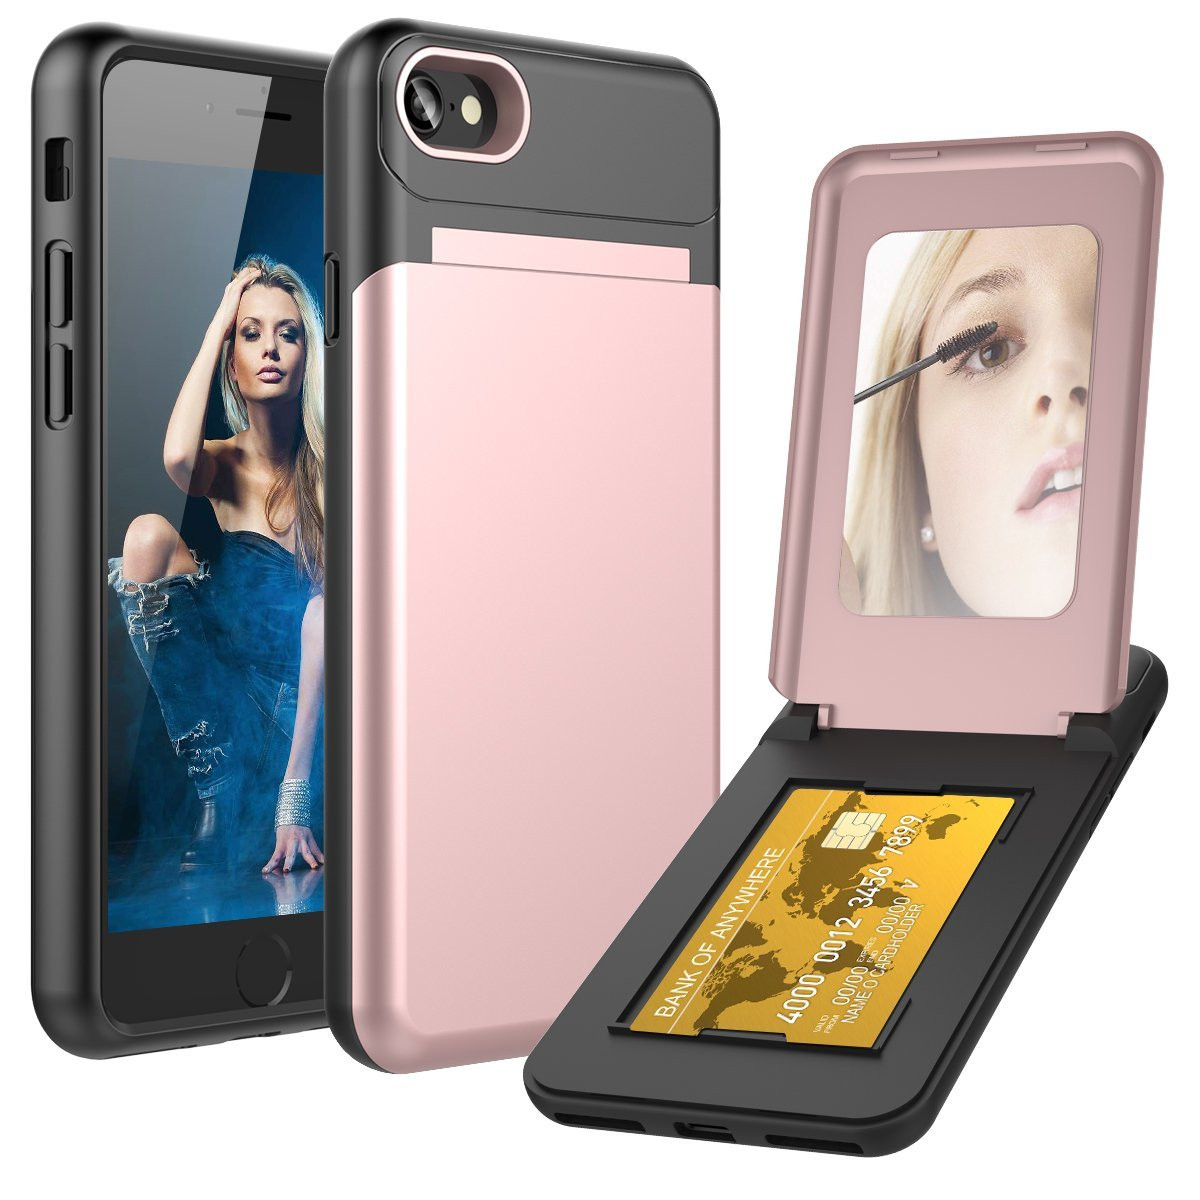 Apple iPhone 6s -  Hard Phone Case with Hidden Mirror and Card Holder Compartment, Rose Gold/Black